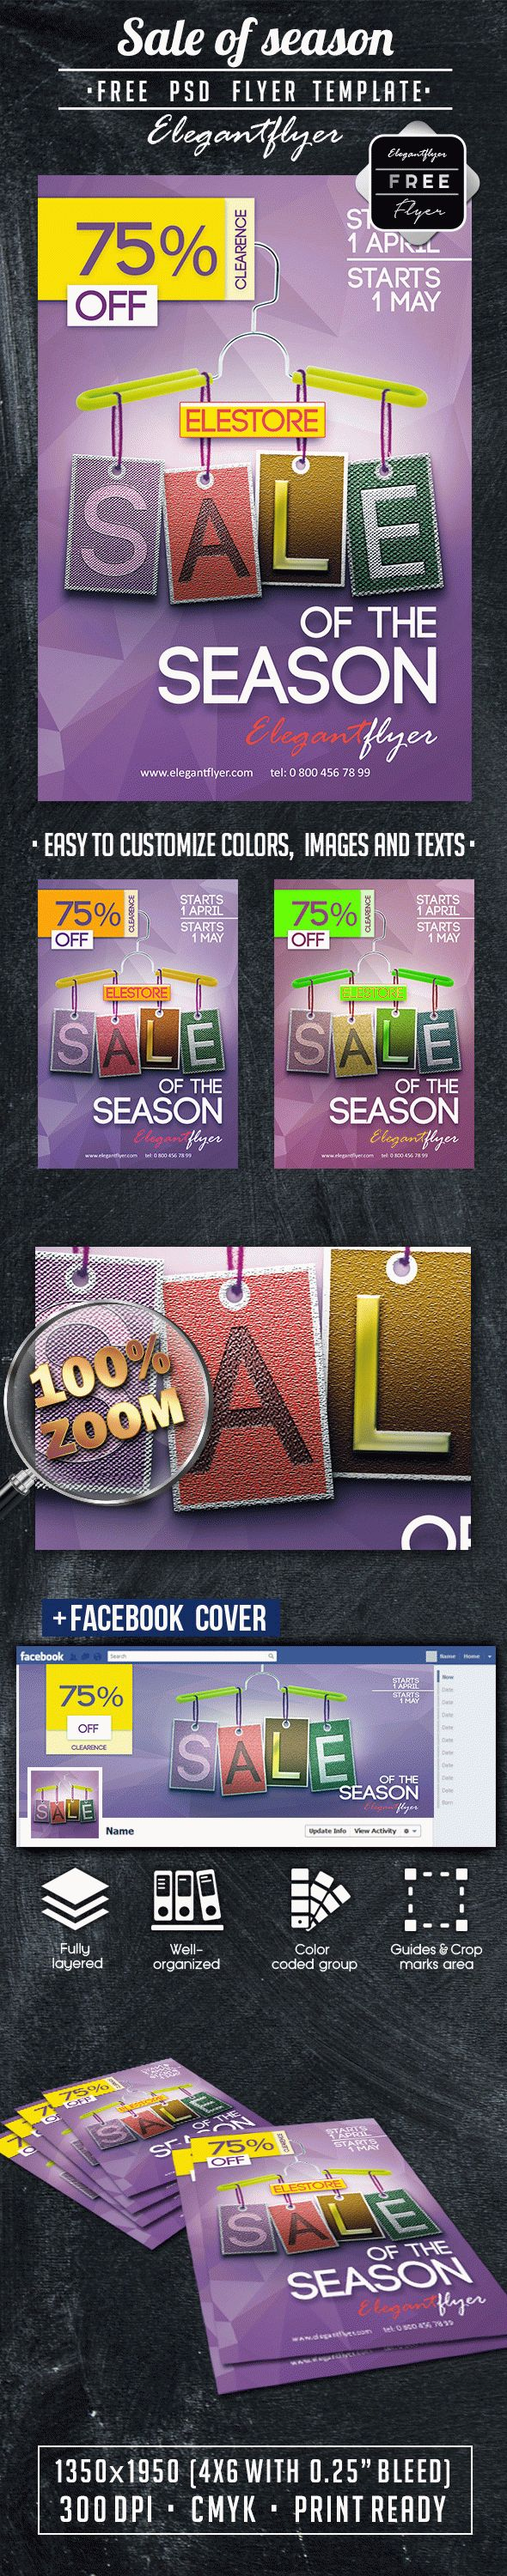 Sale of season – Free PSD Flyer Template